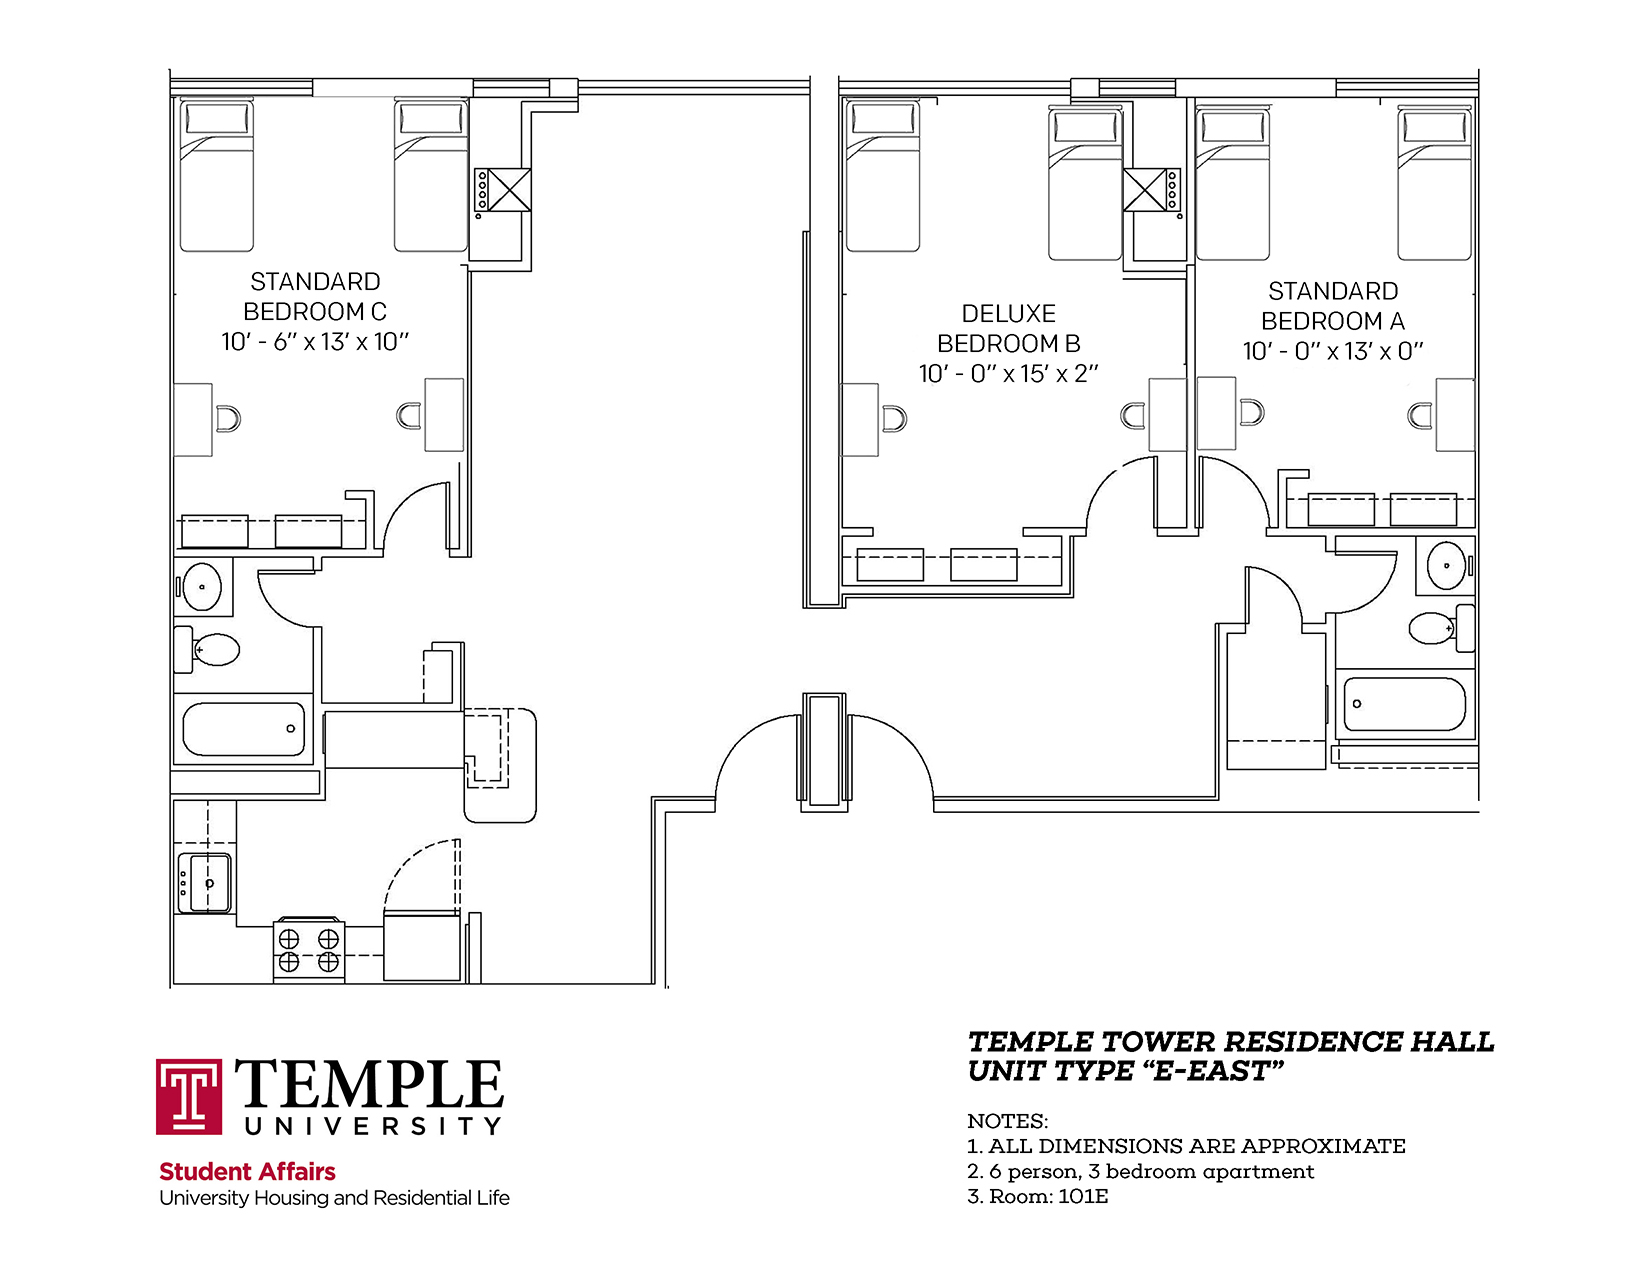 Temple Towers: Unit E East - 6 person, 3 bedroom Apartment